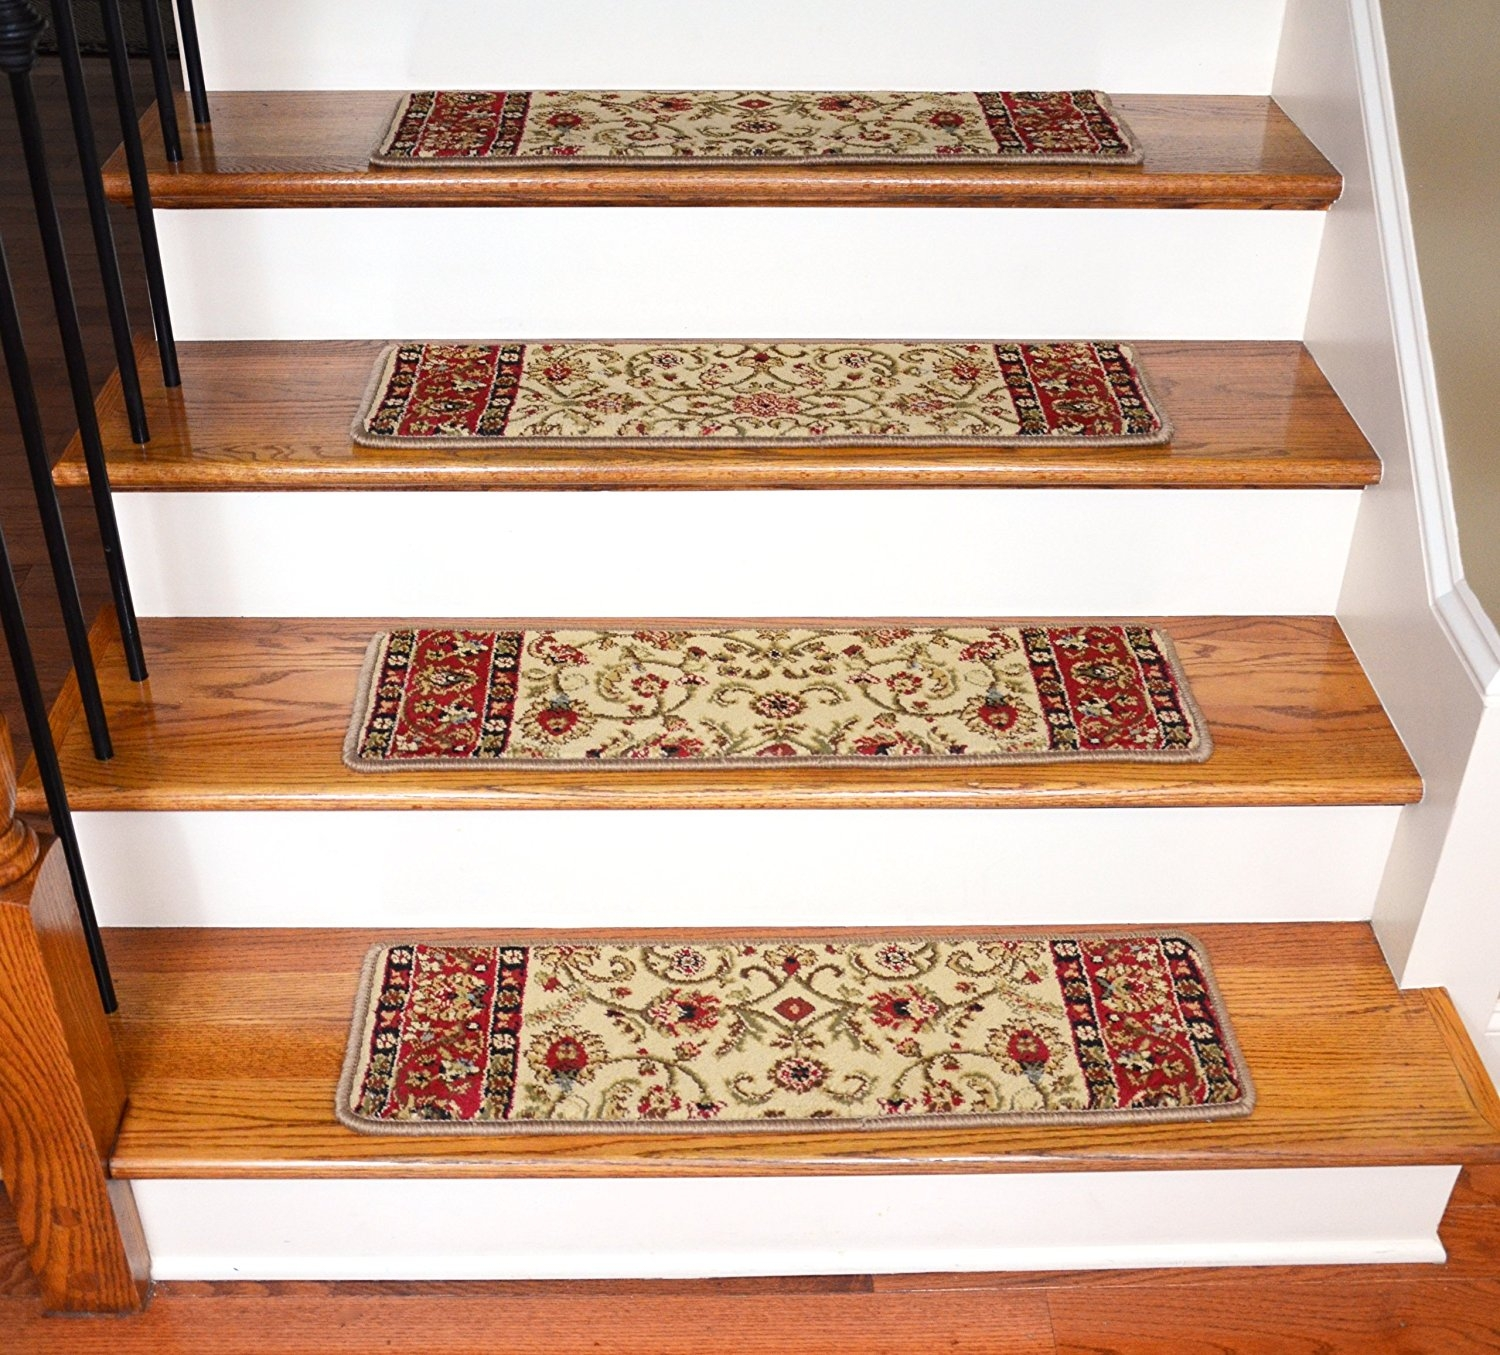 Popular Photo of Stair Tread Rug Gripper